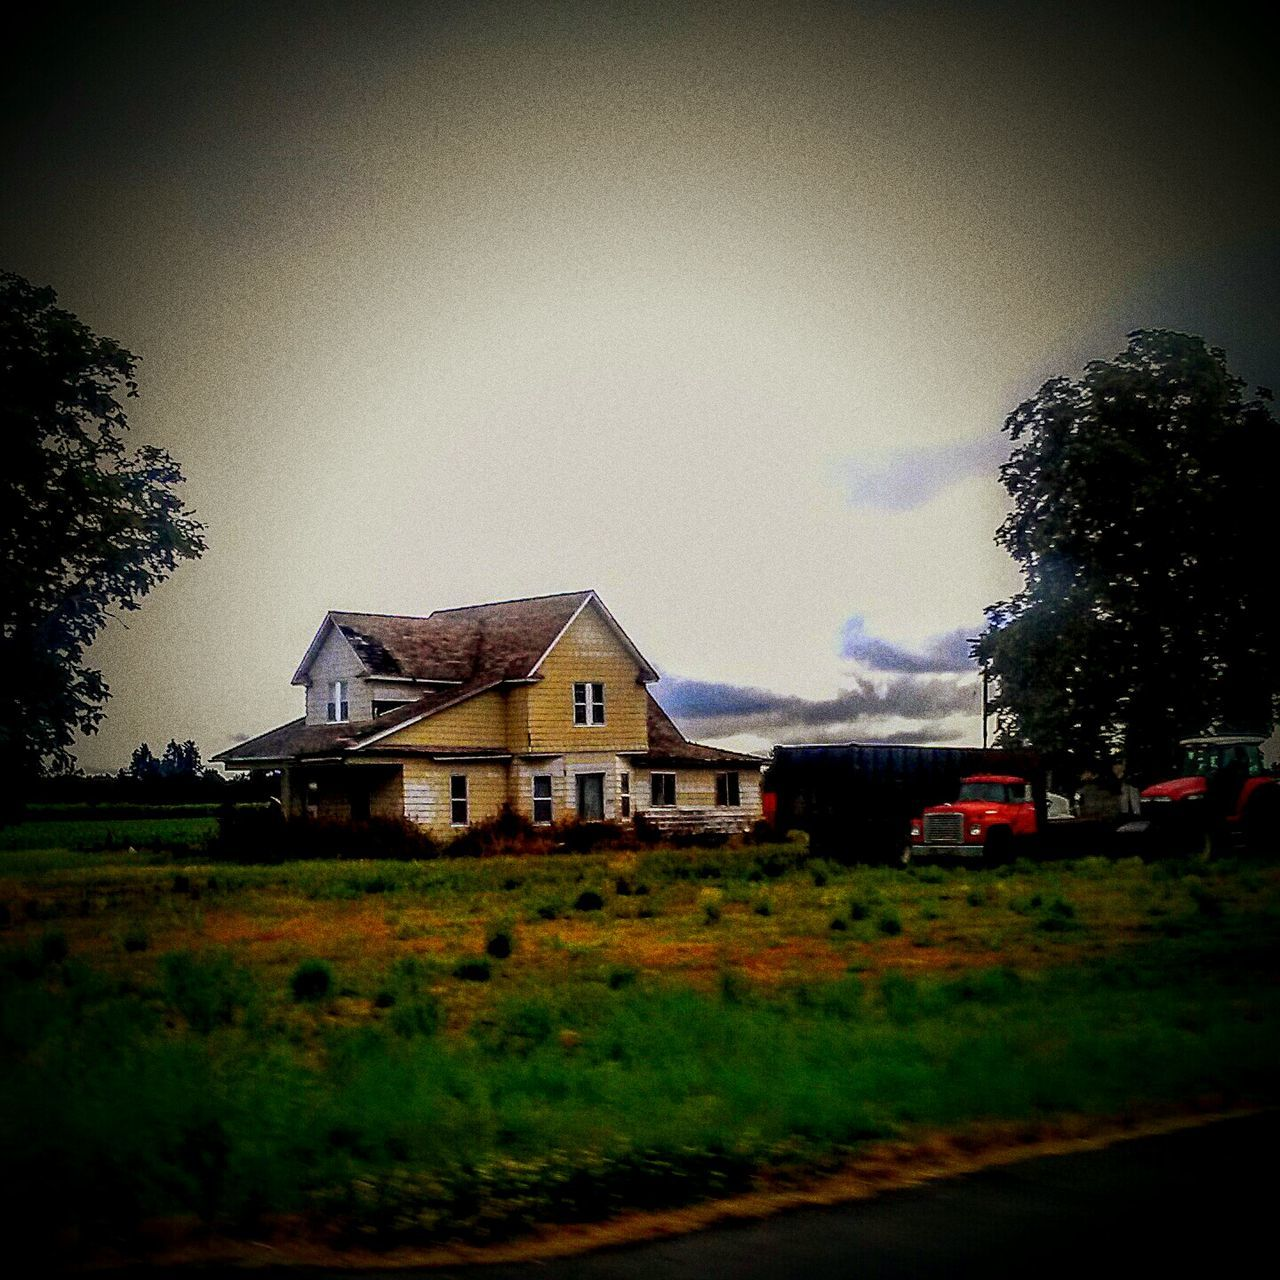 On The Farm Country Living In The Sticks Willamette Valley Yamhill County Take Me Home Where I Belong City Limits Where Im From. Enjoy Friends